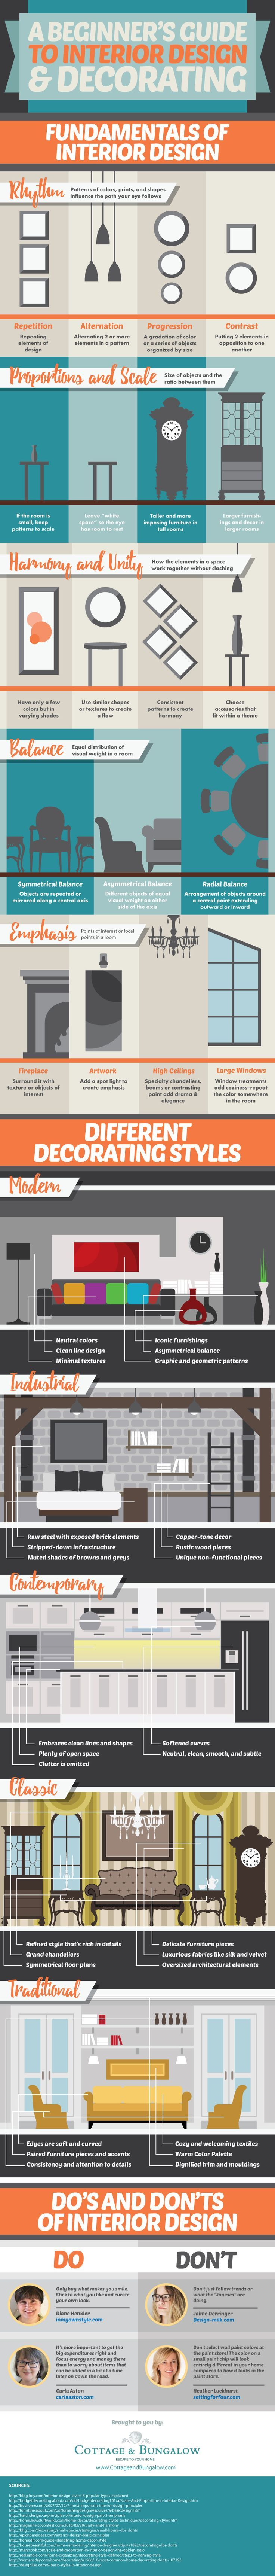 Best 25+ Interior design ideas on Pinterest | Copper decor ...